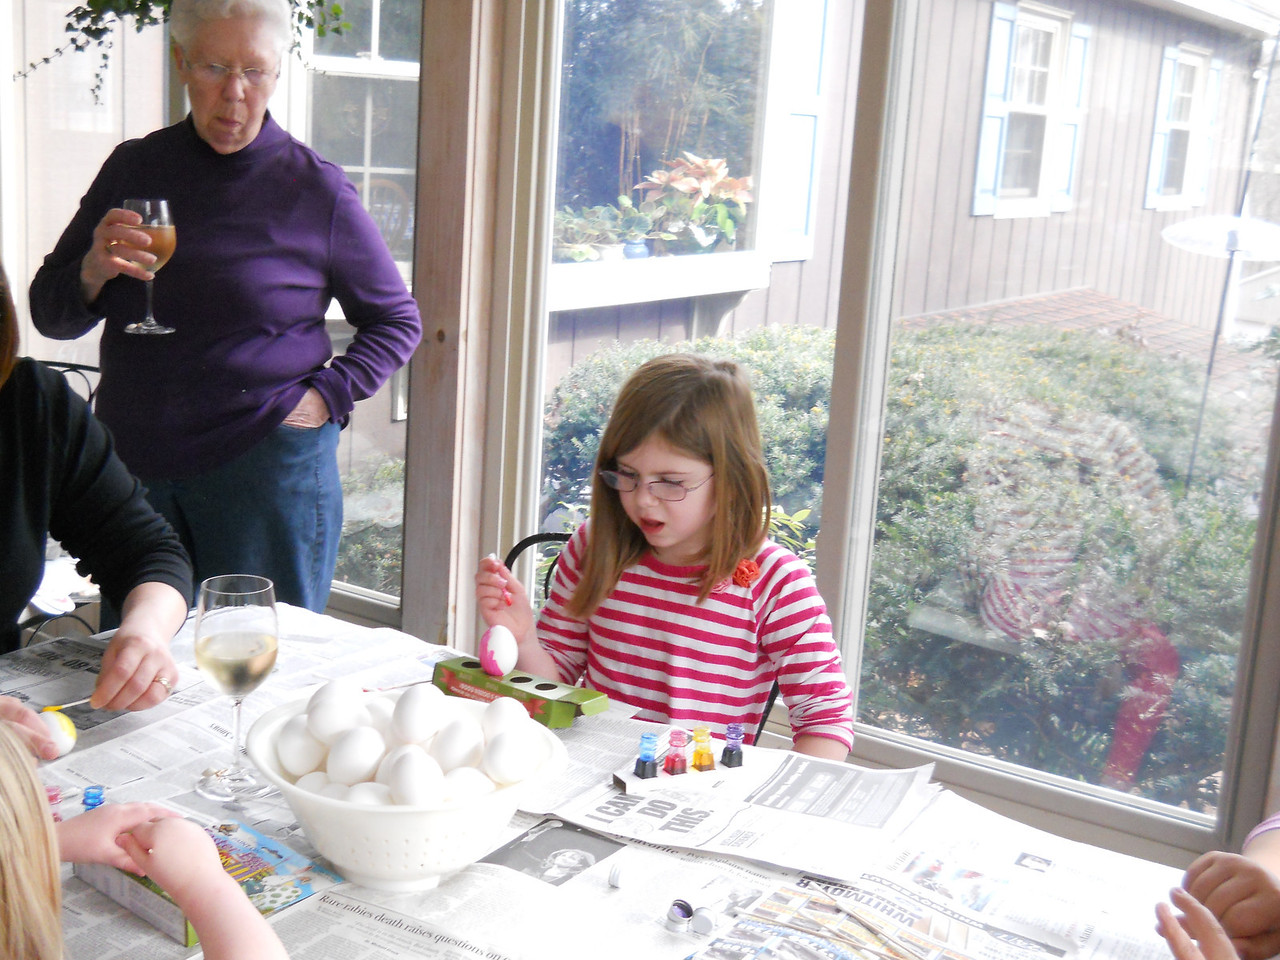 Nana looking on as Anna paints